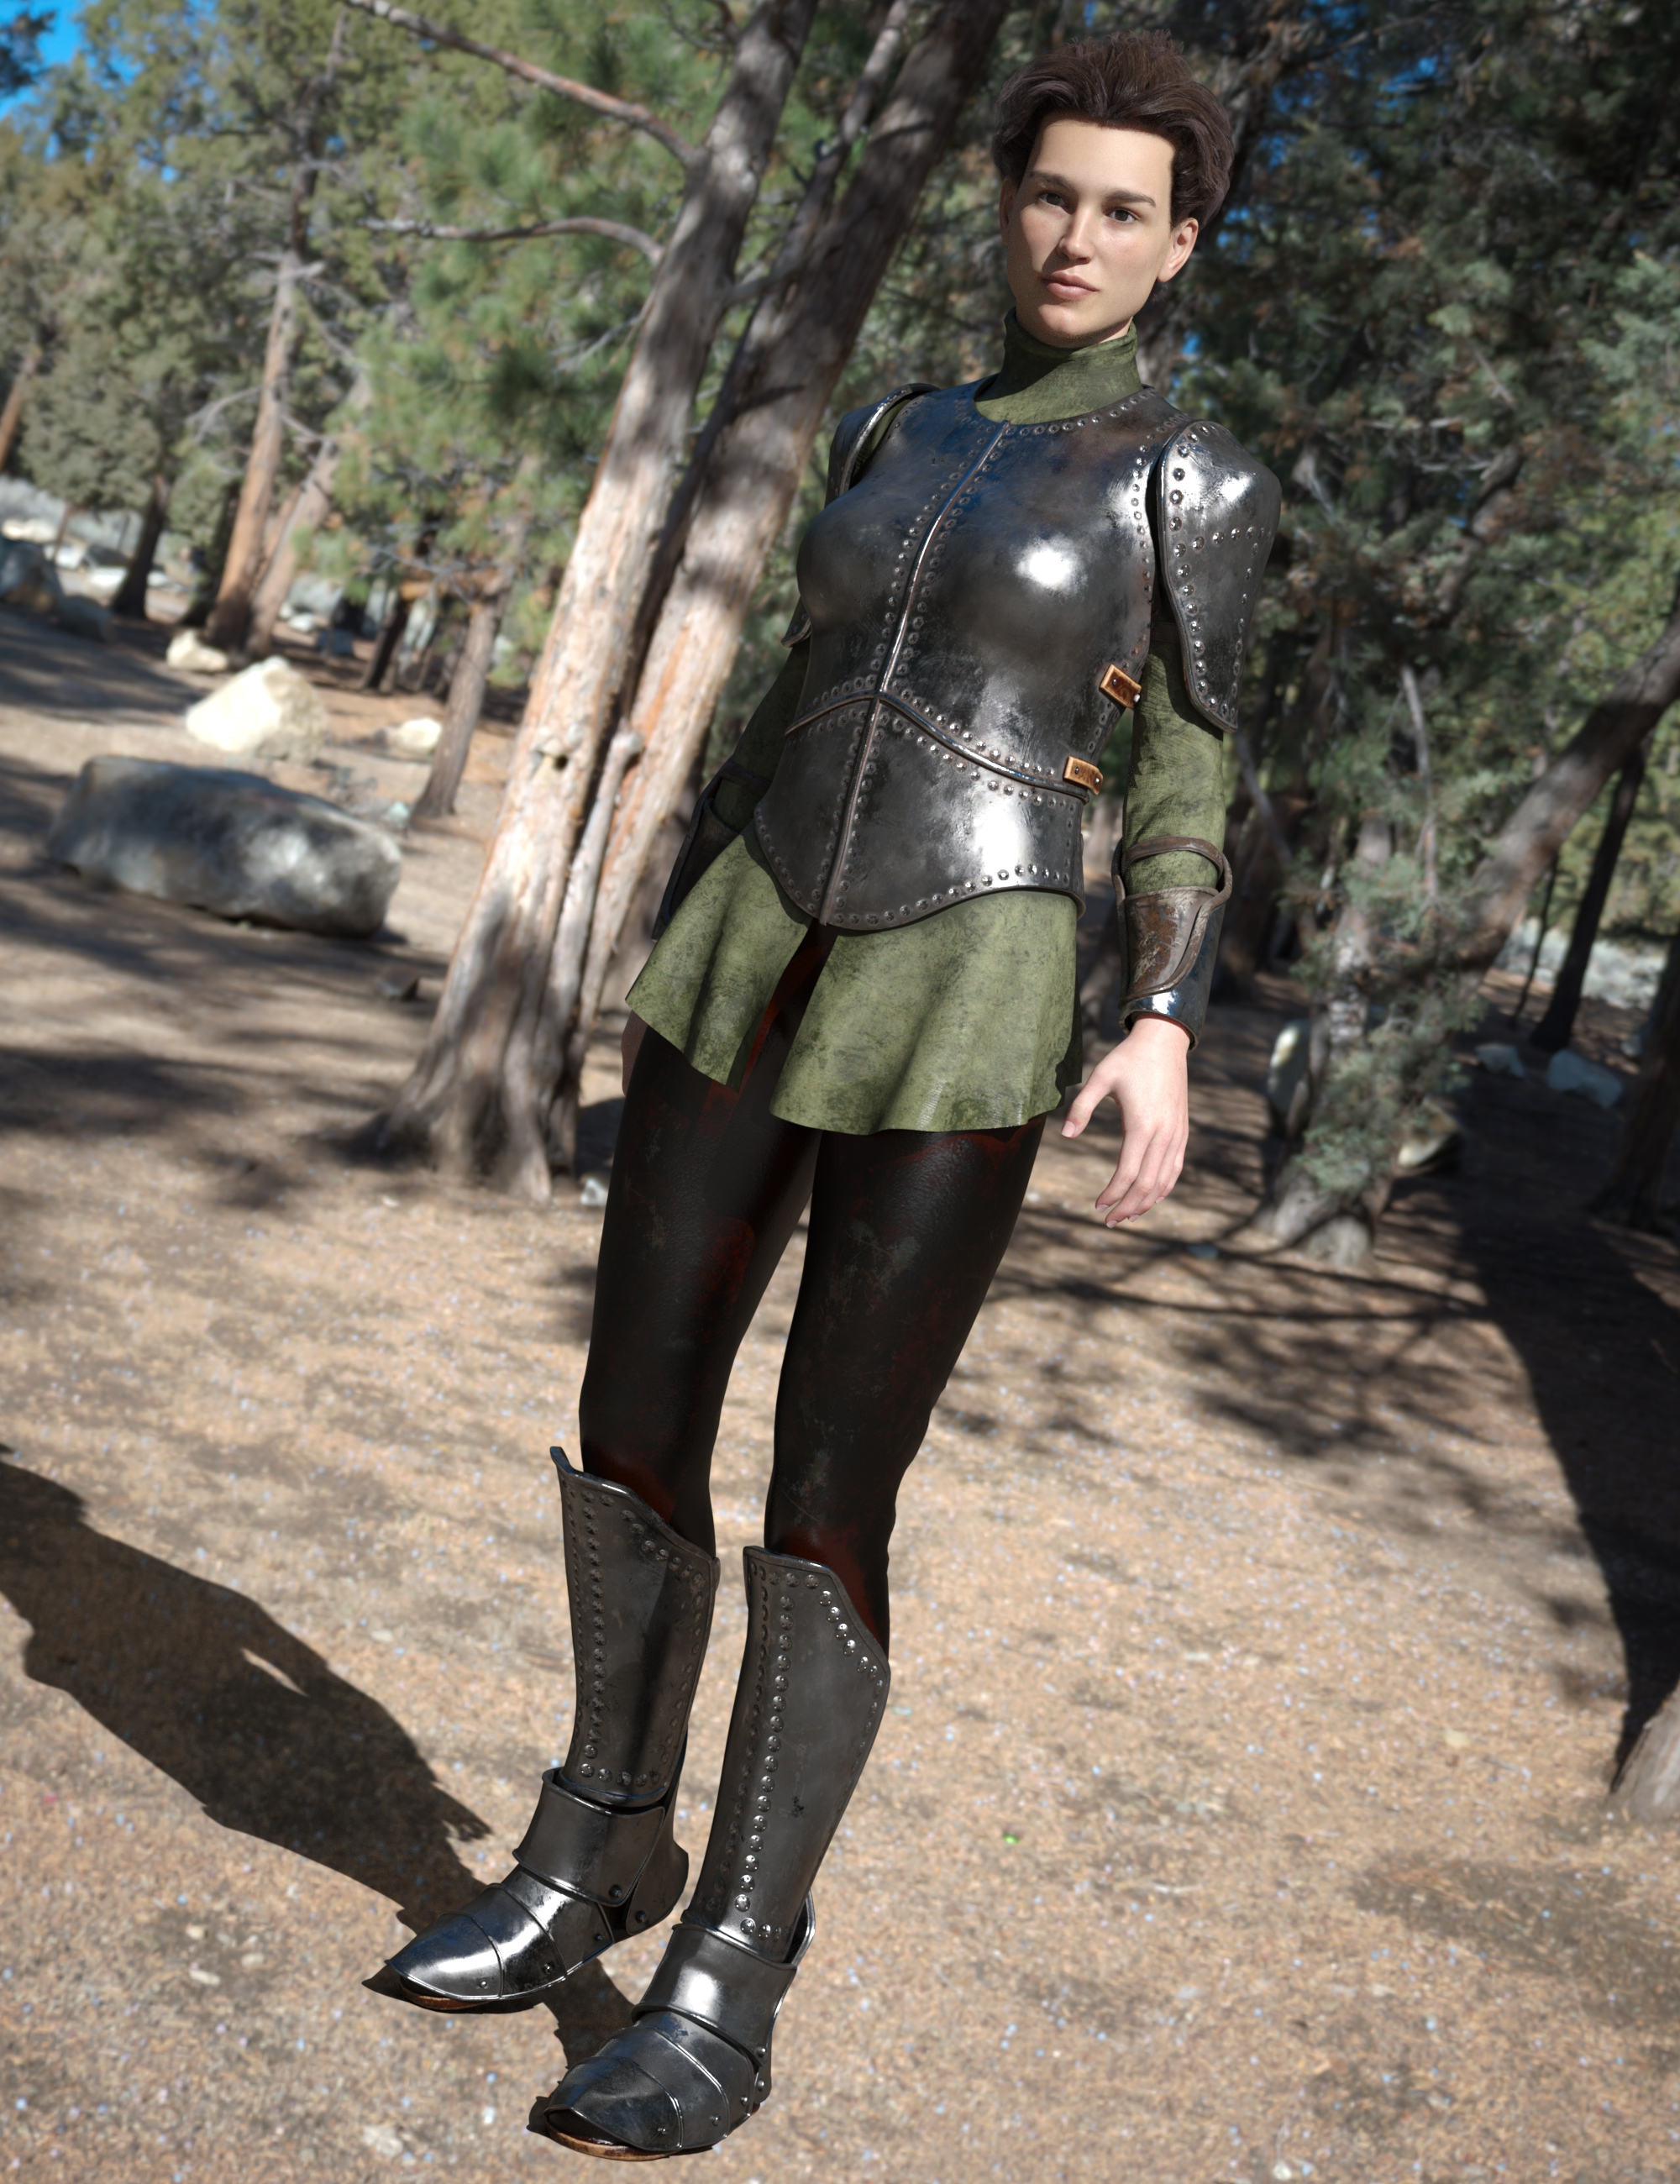 Maid At Arms Armor for Genesis 8 Female(s) by: Moonscape GraphicsSade, 3D Models by Daz 3D